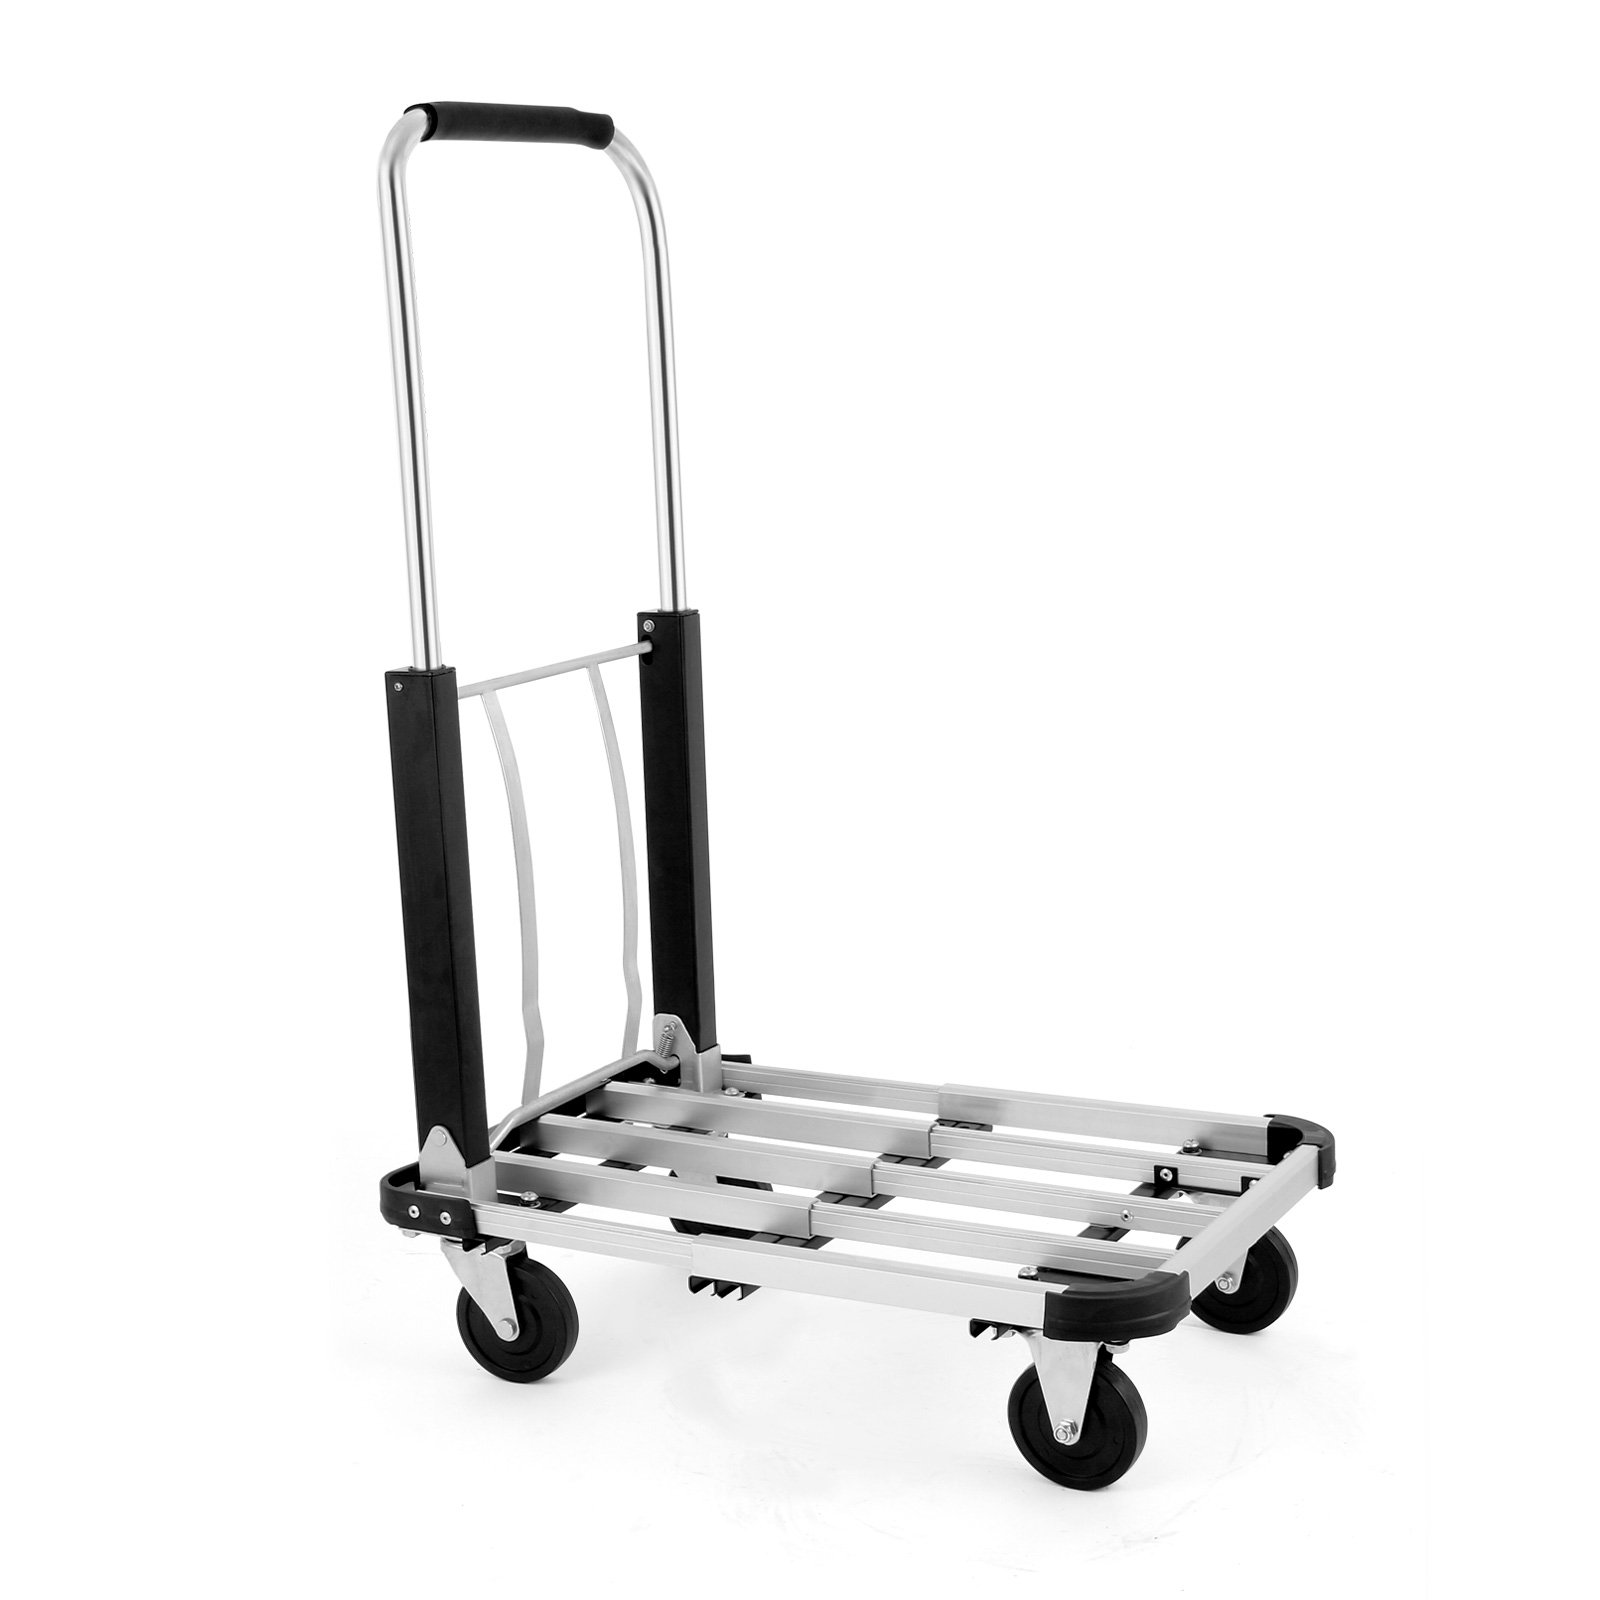 LOVSHARE 330LB Utility Cart Folding Platform Truck All-Purpose Industrial Cart With Wheels (330 lbs hand truck)